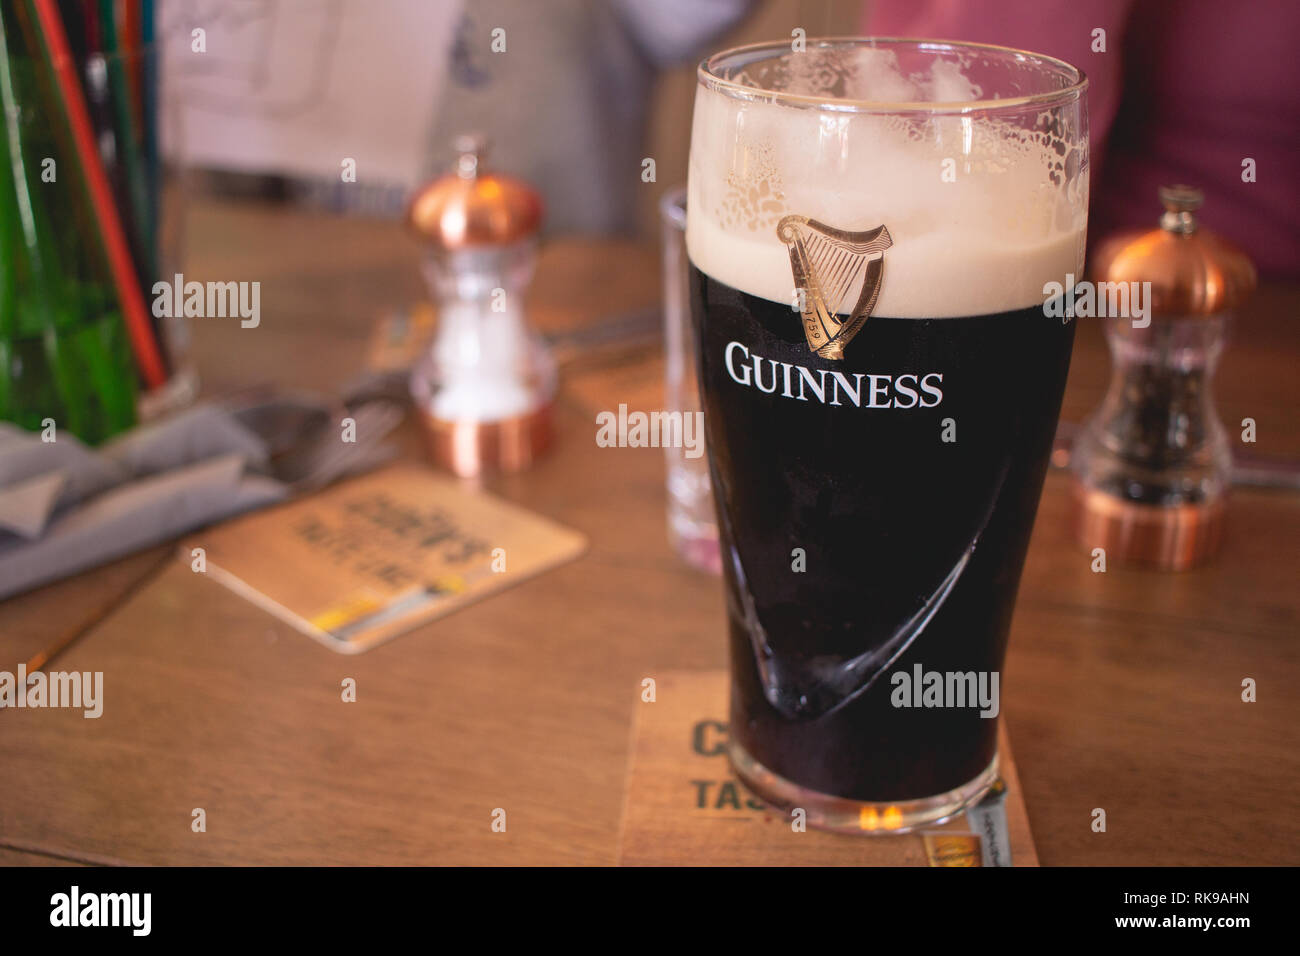 Pint of Guinness on a pub table - Stock Image